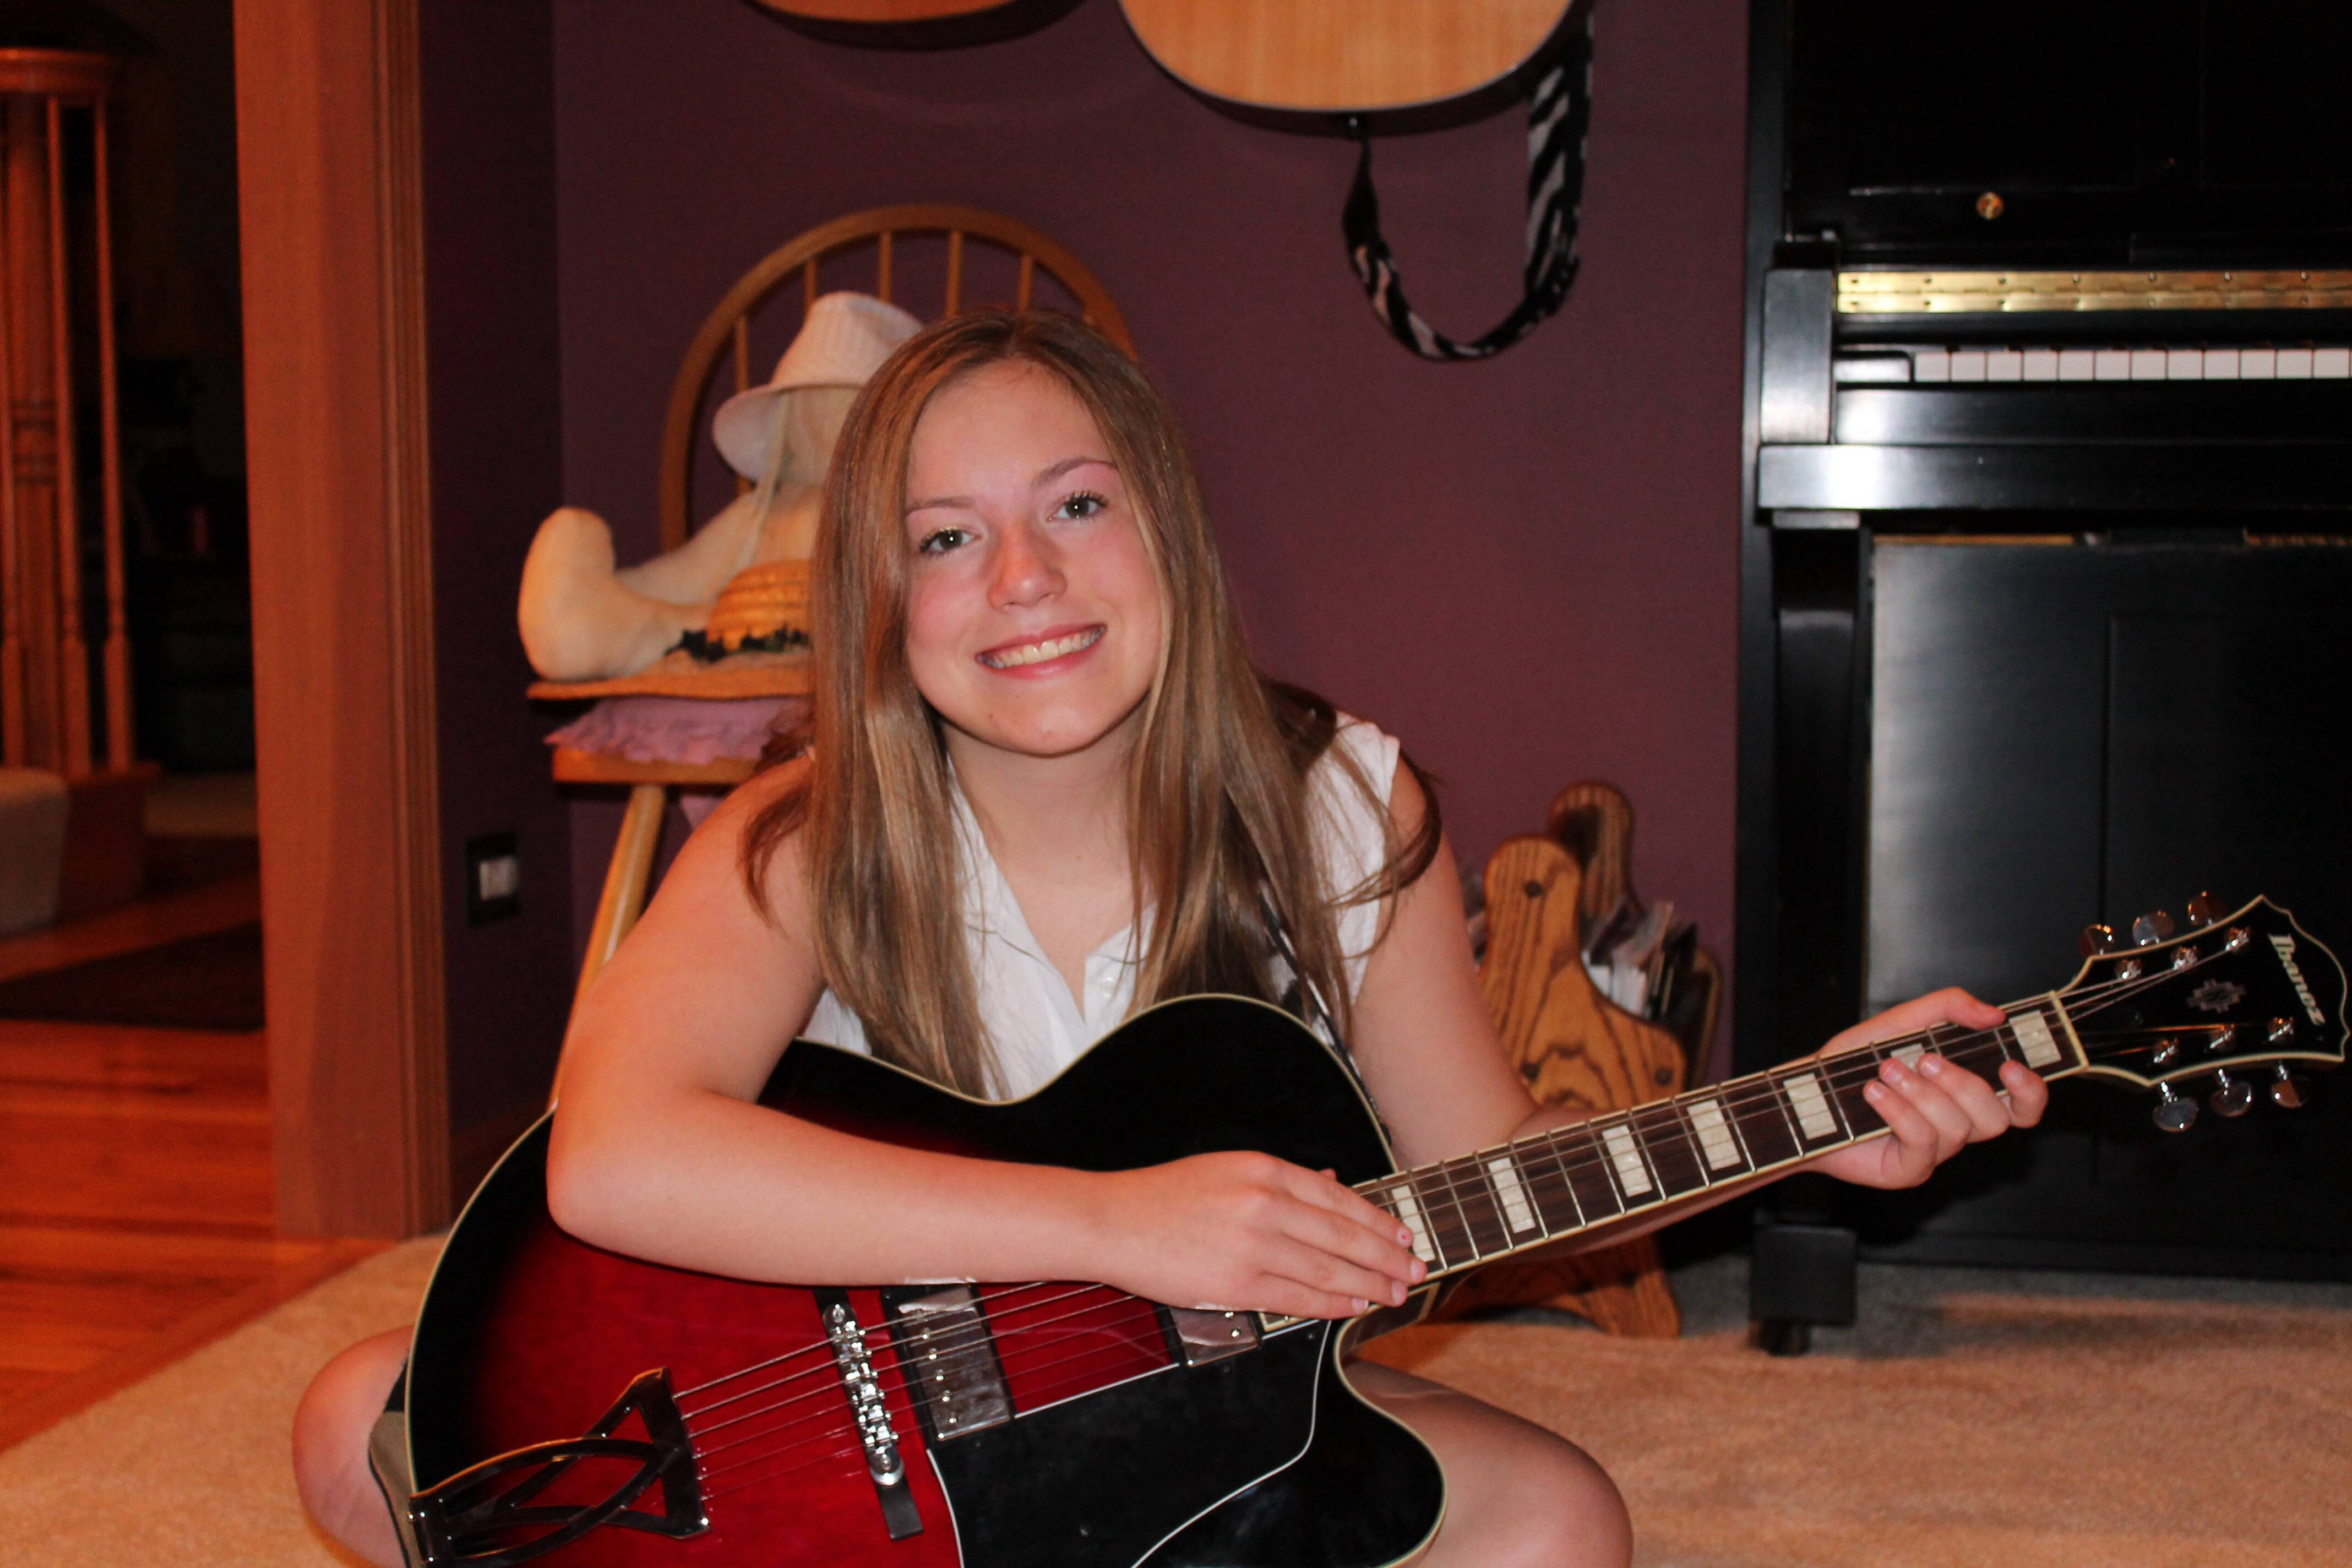 Twelve-year-old Bailey Cates, guitarist and pianist, will perform a concert to raise money for the Kaneland Arts Initiative.